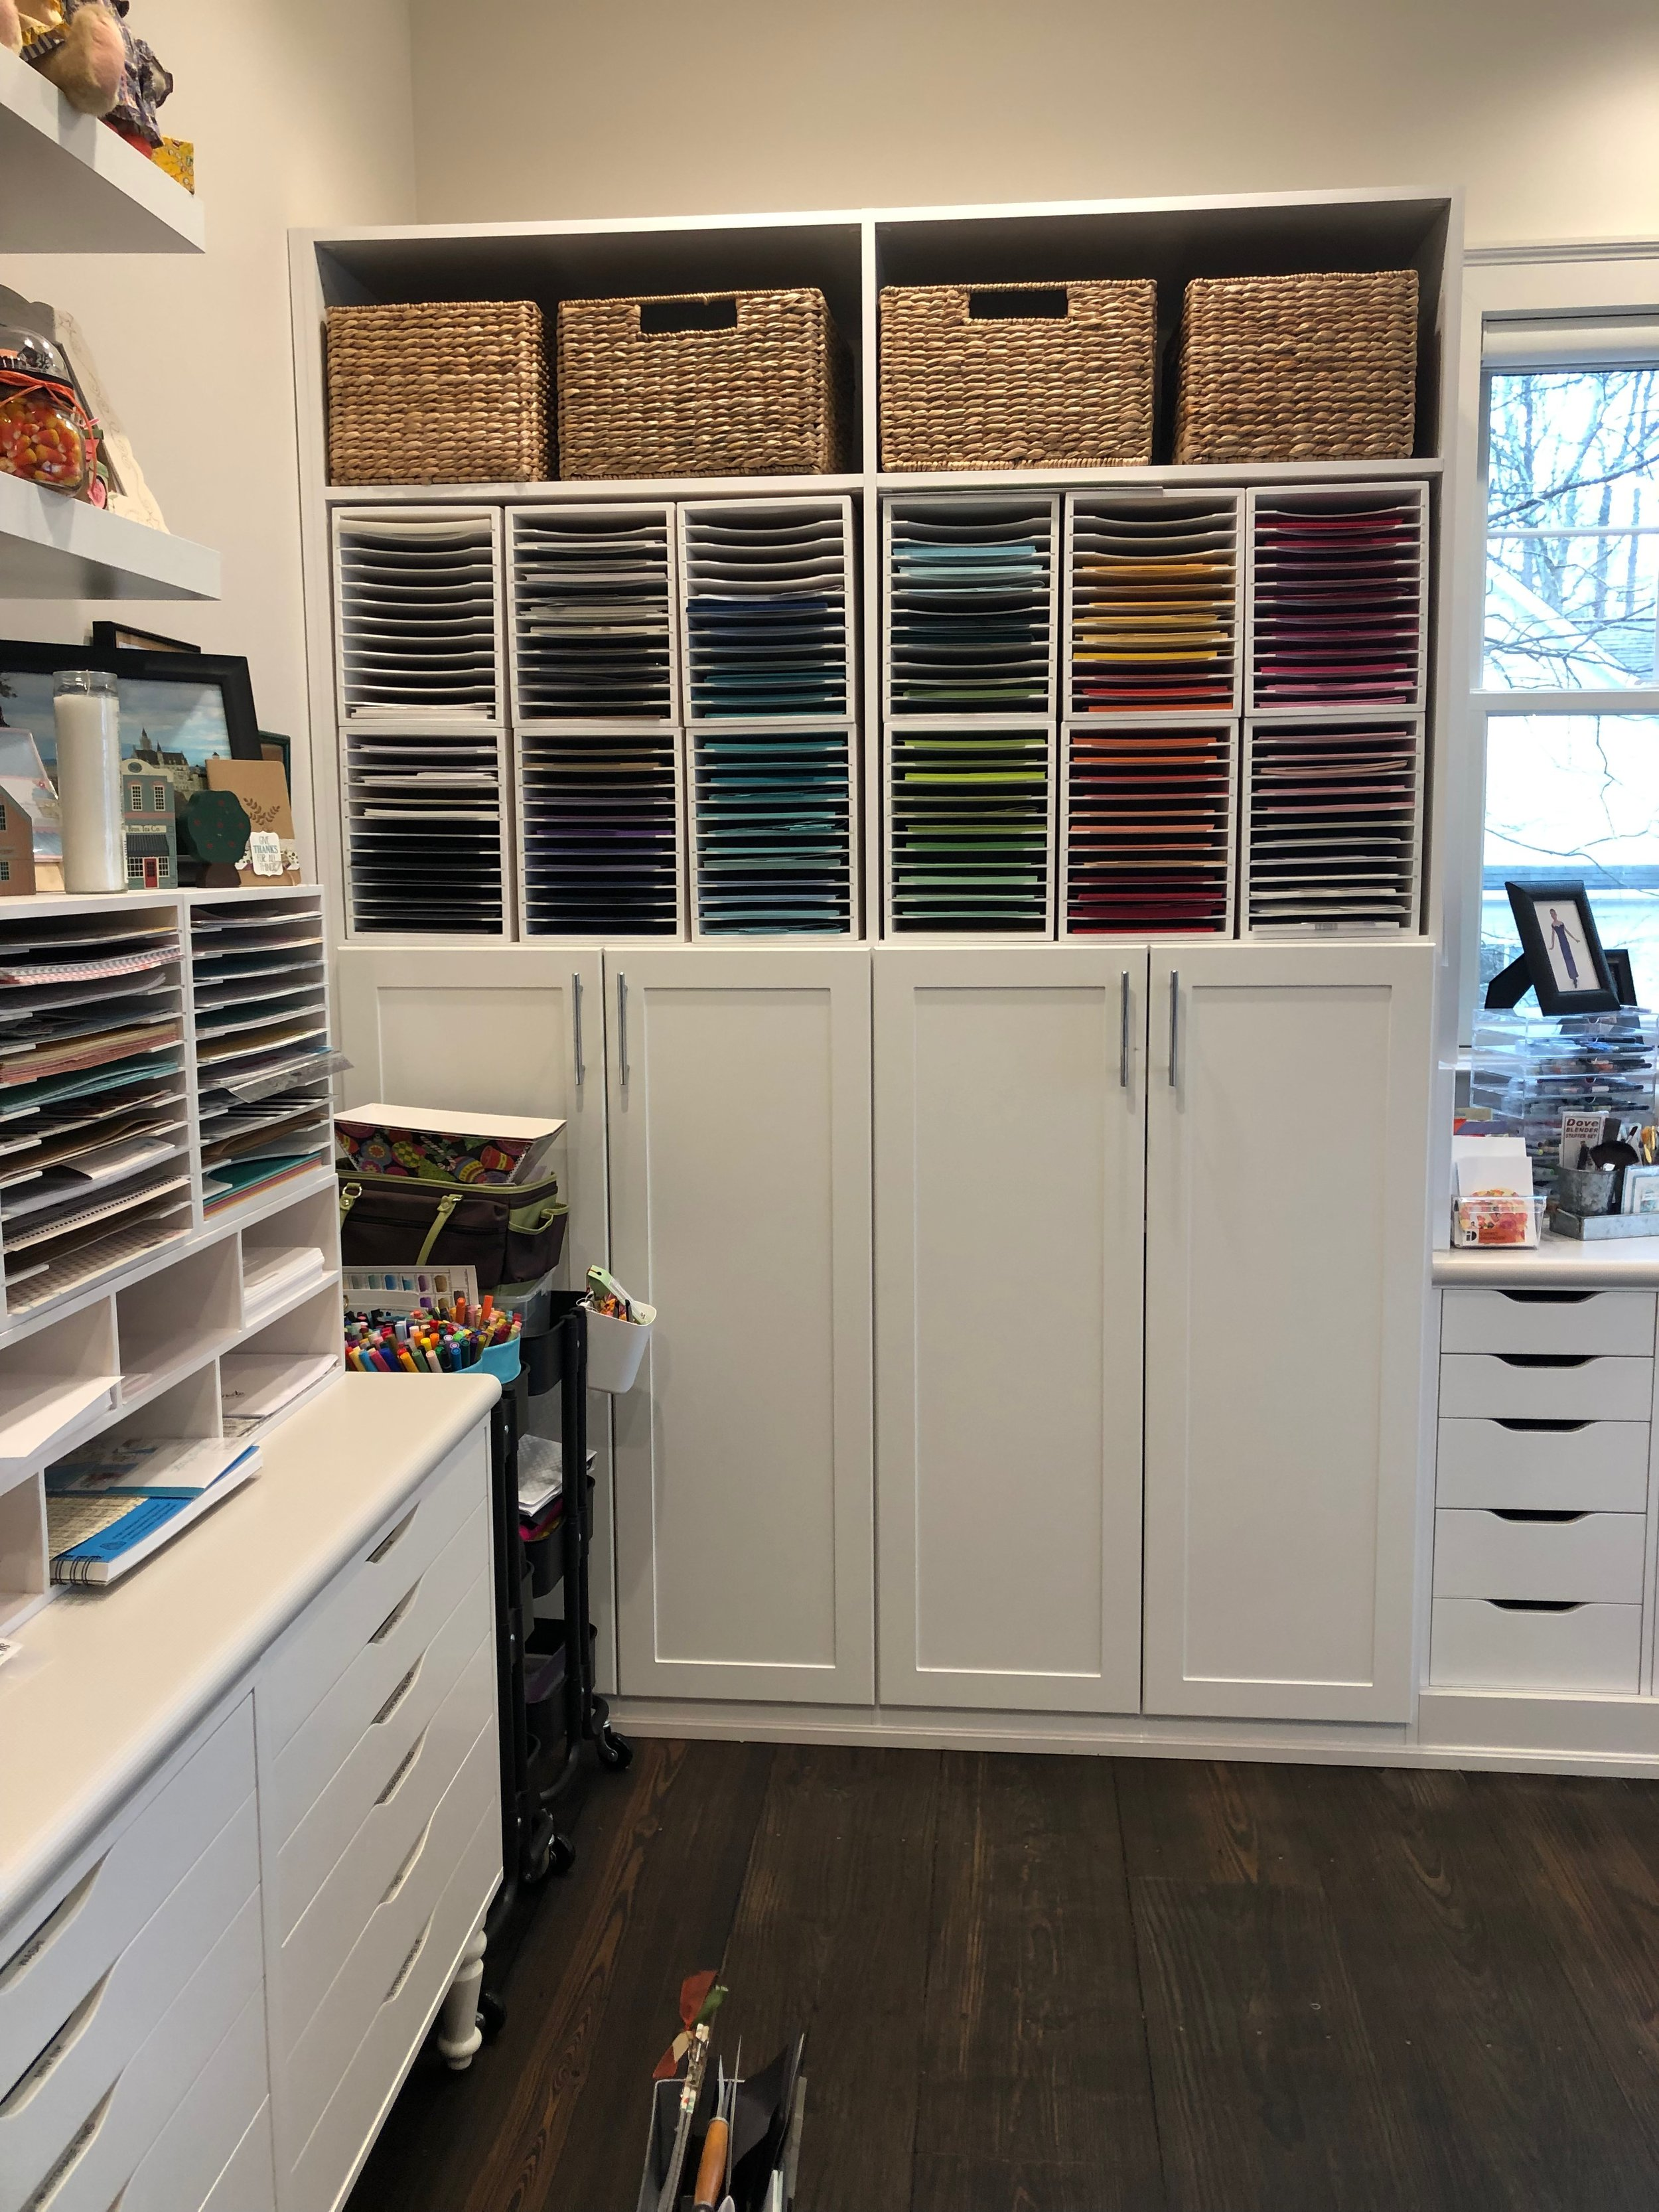 paper storage above and in cabinet